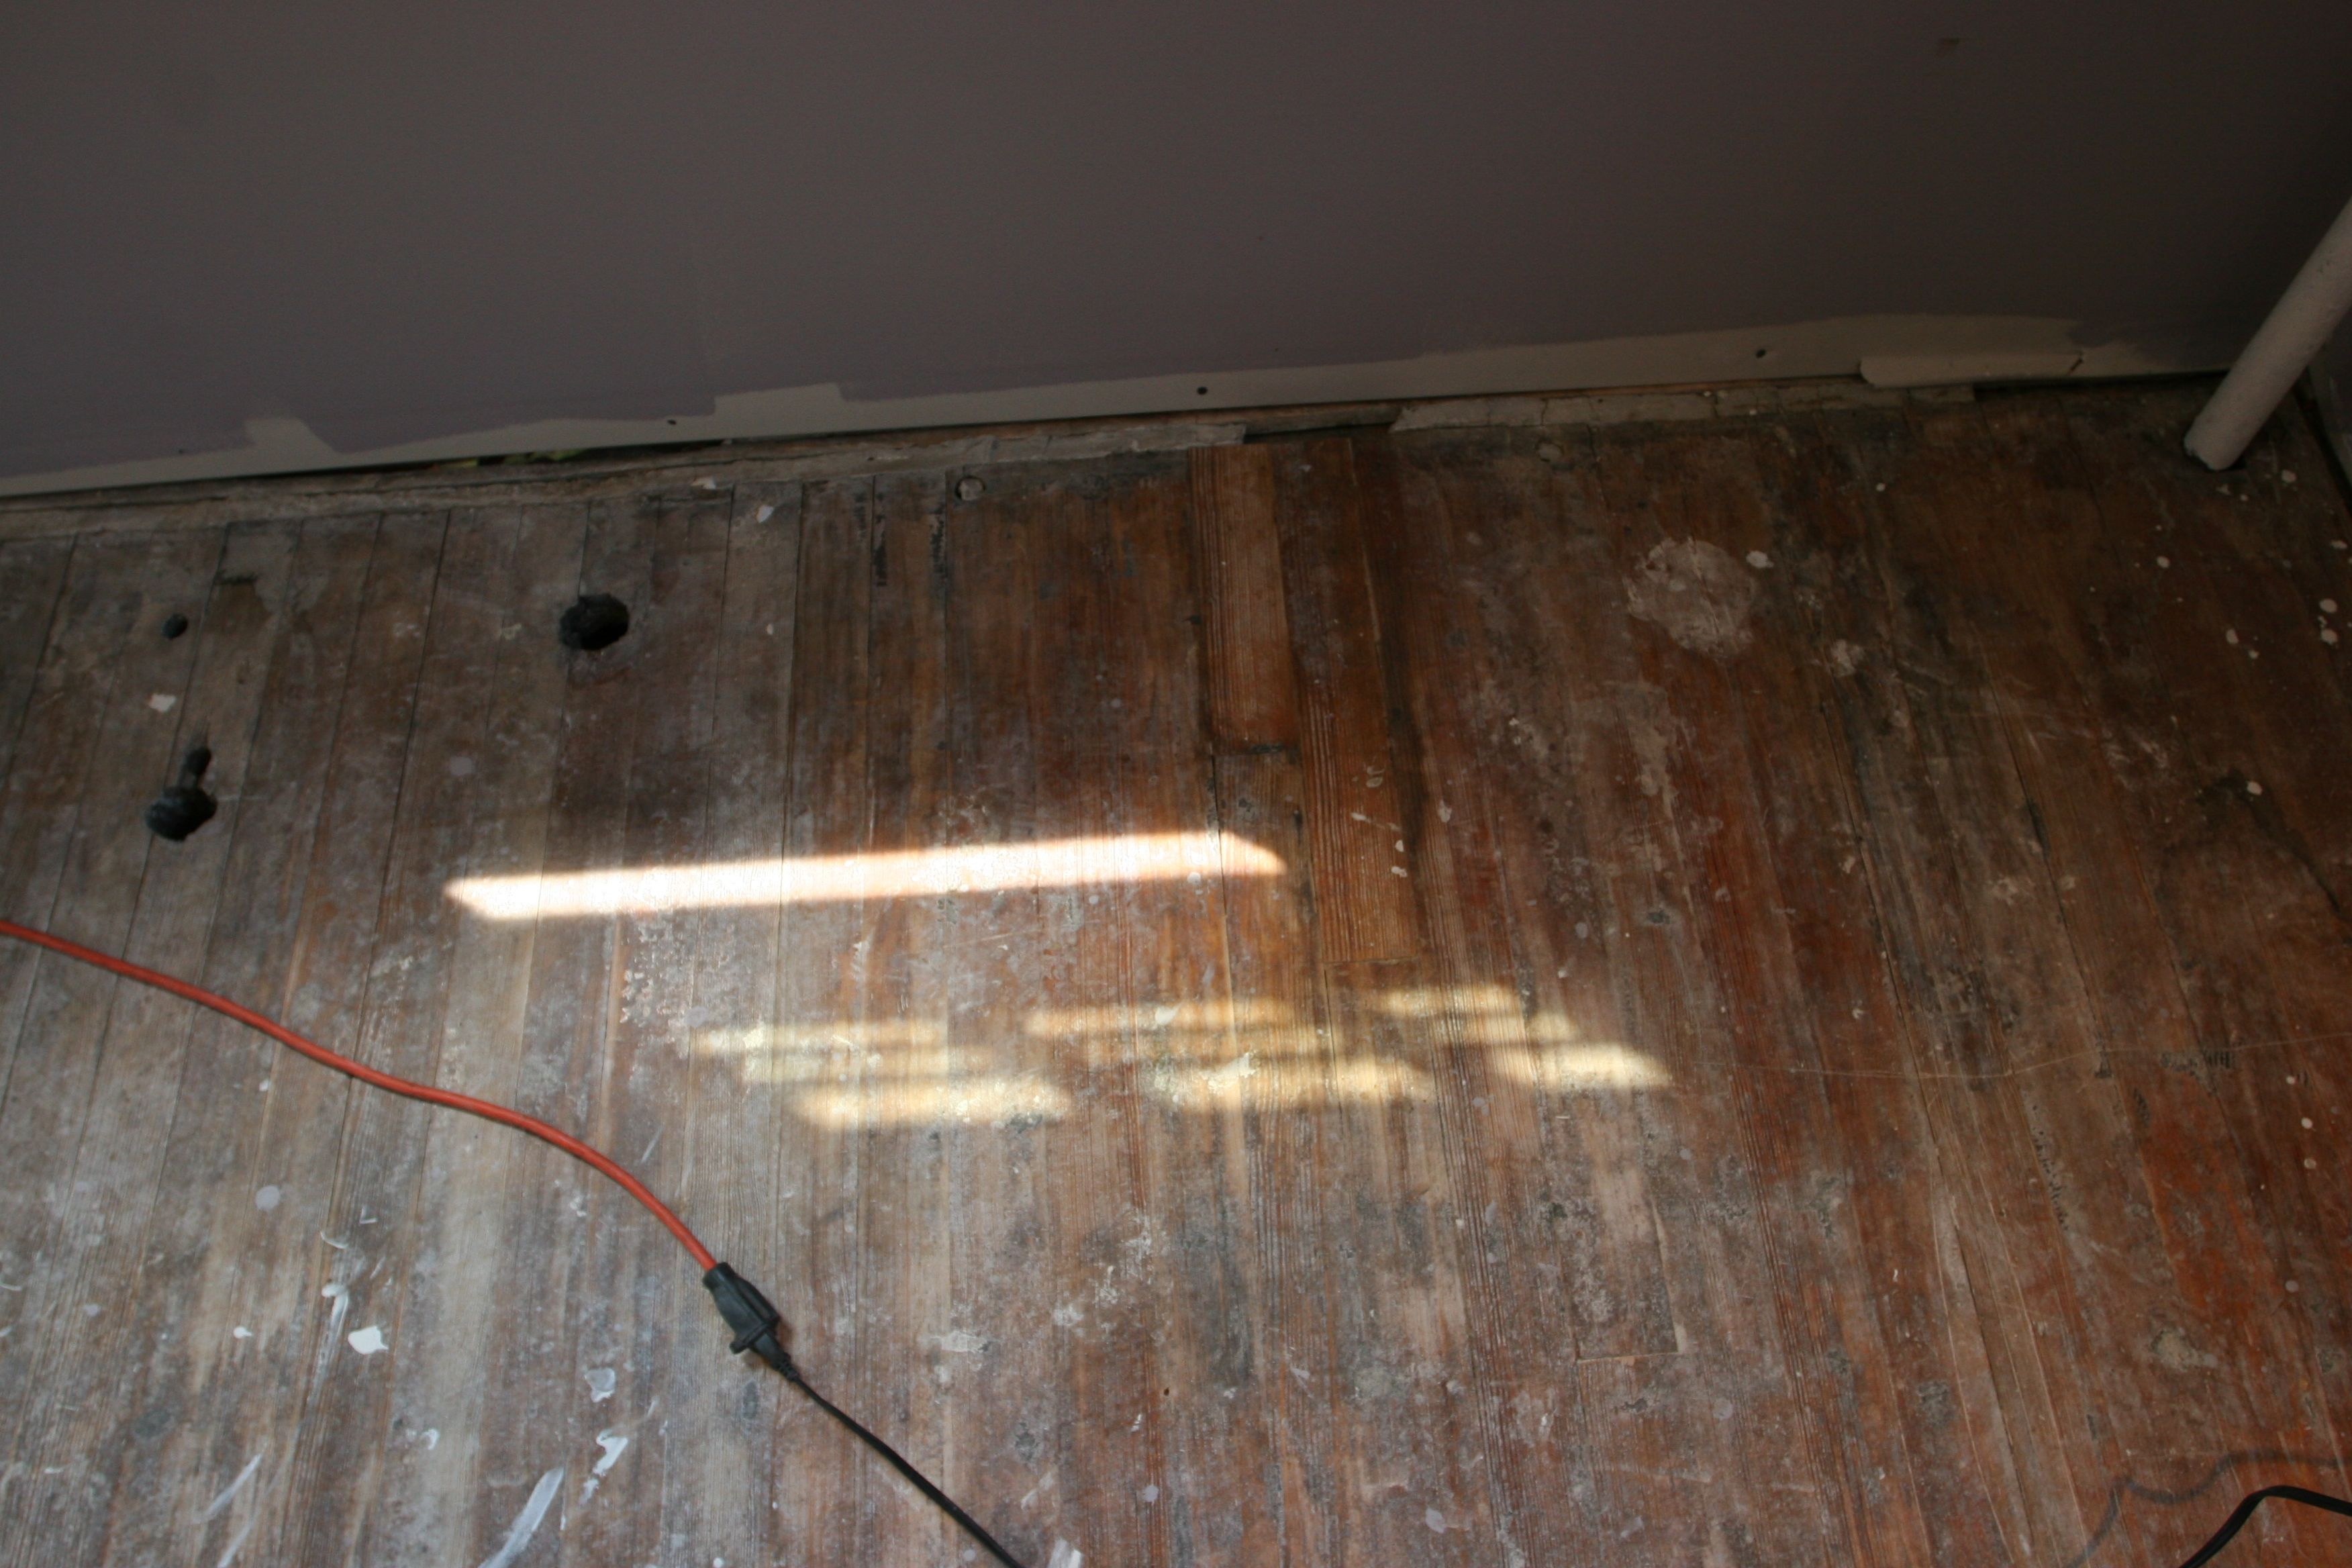 Patched up some holes that would show in our bar area.